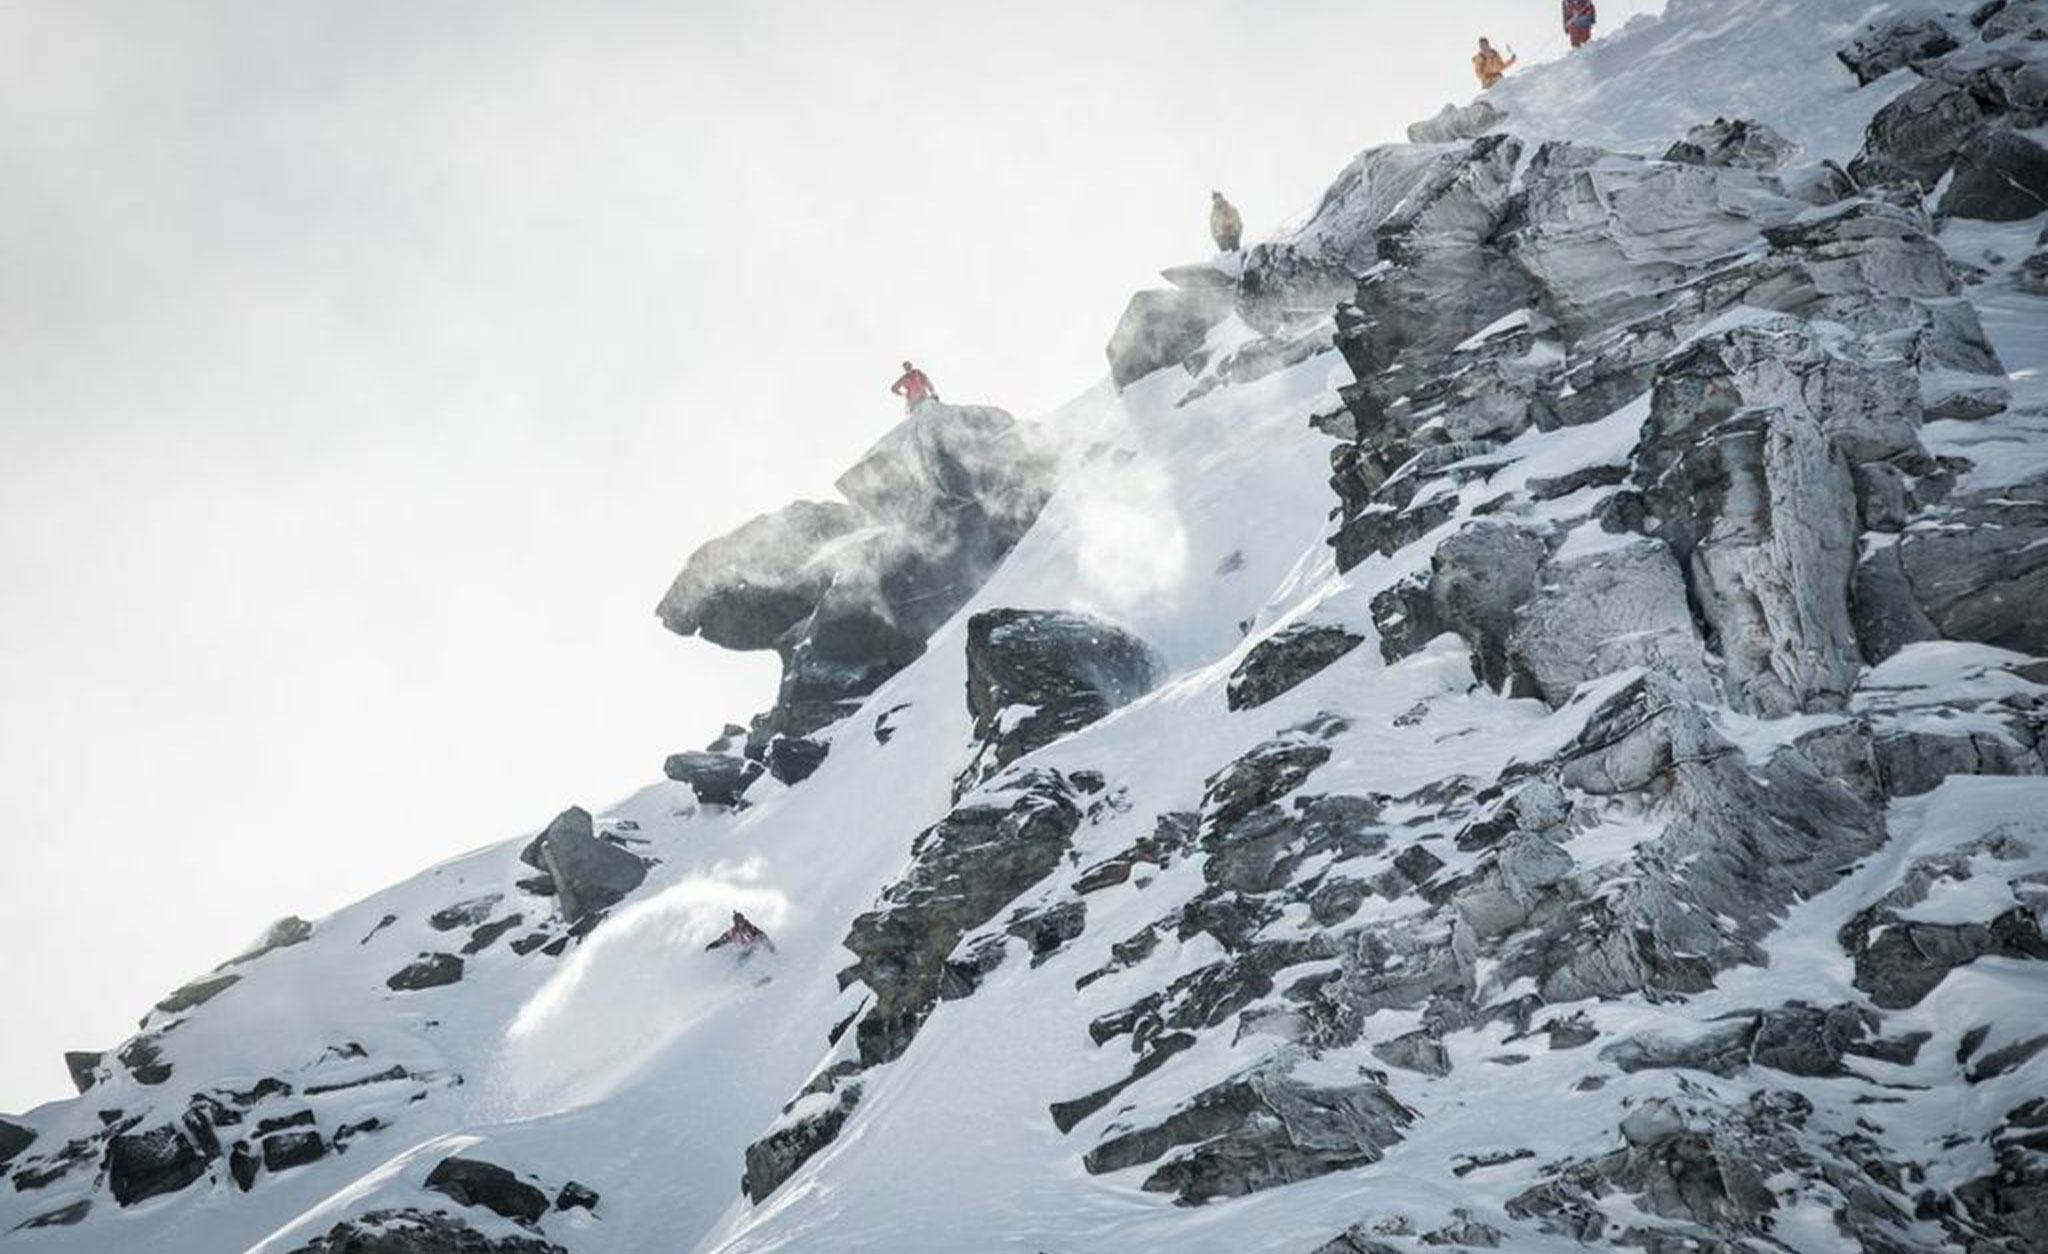 The 2013 Freeride World Tour had its finale Friday at Verbier, Switzerland.